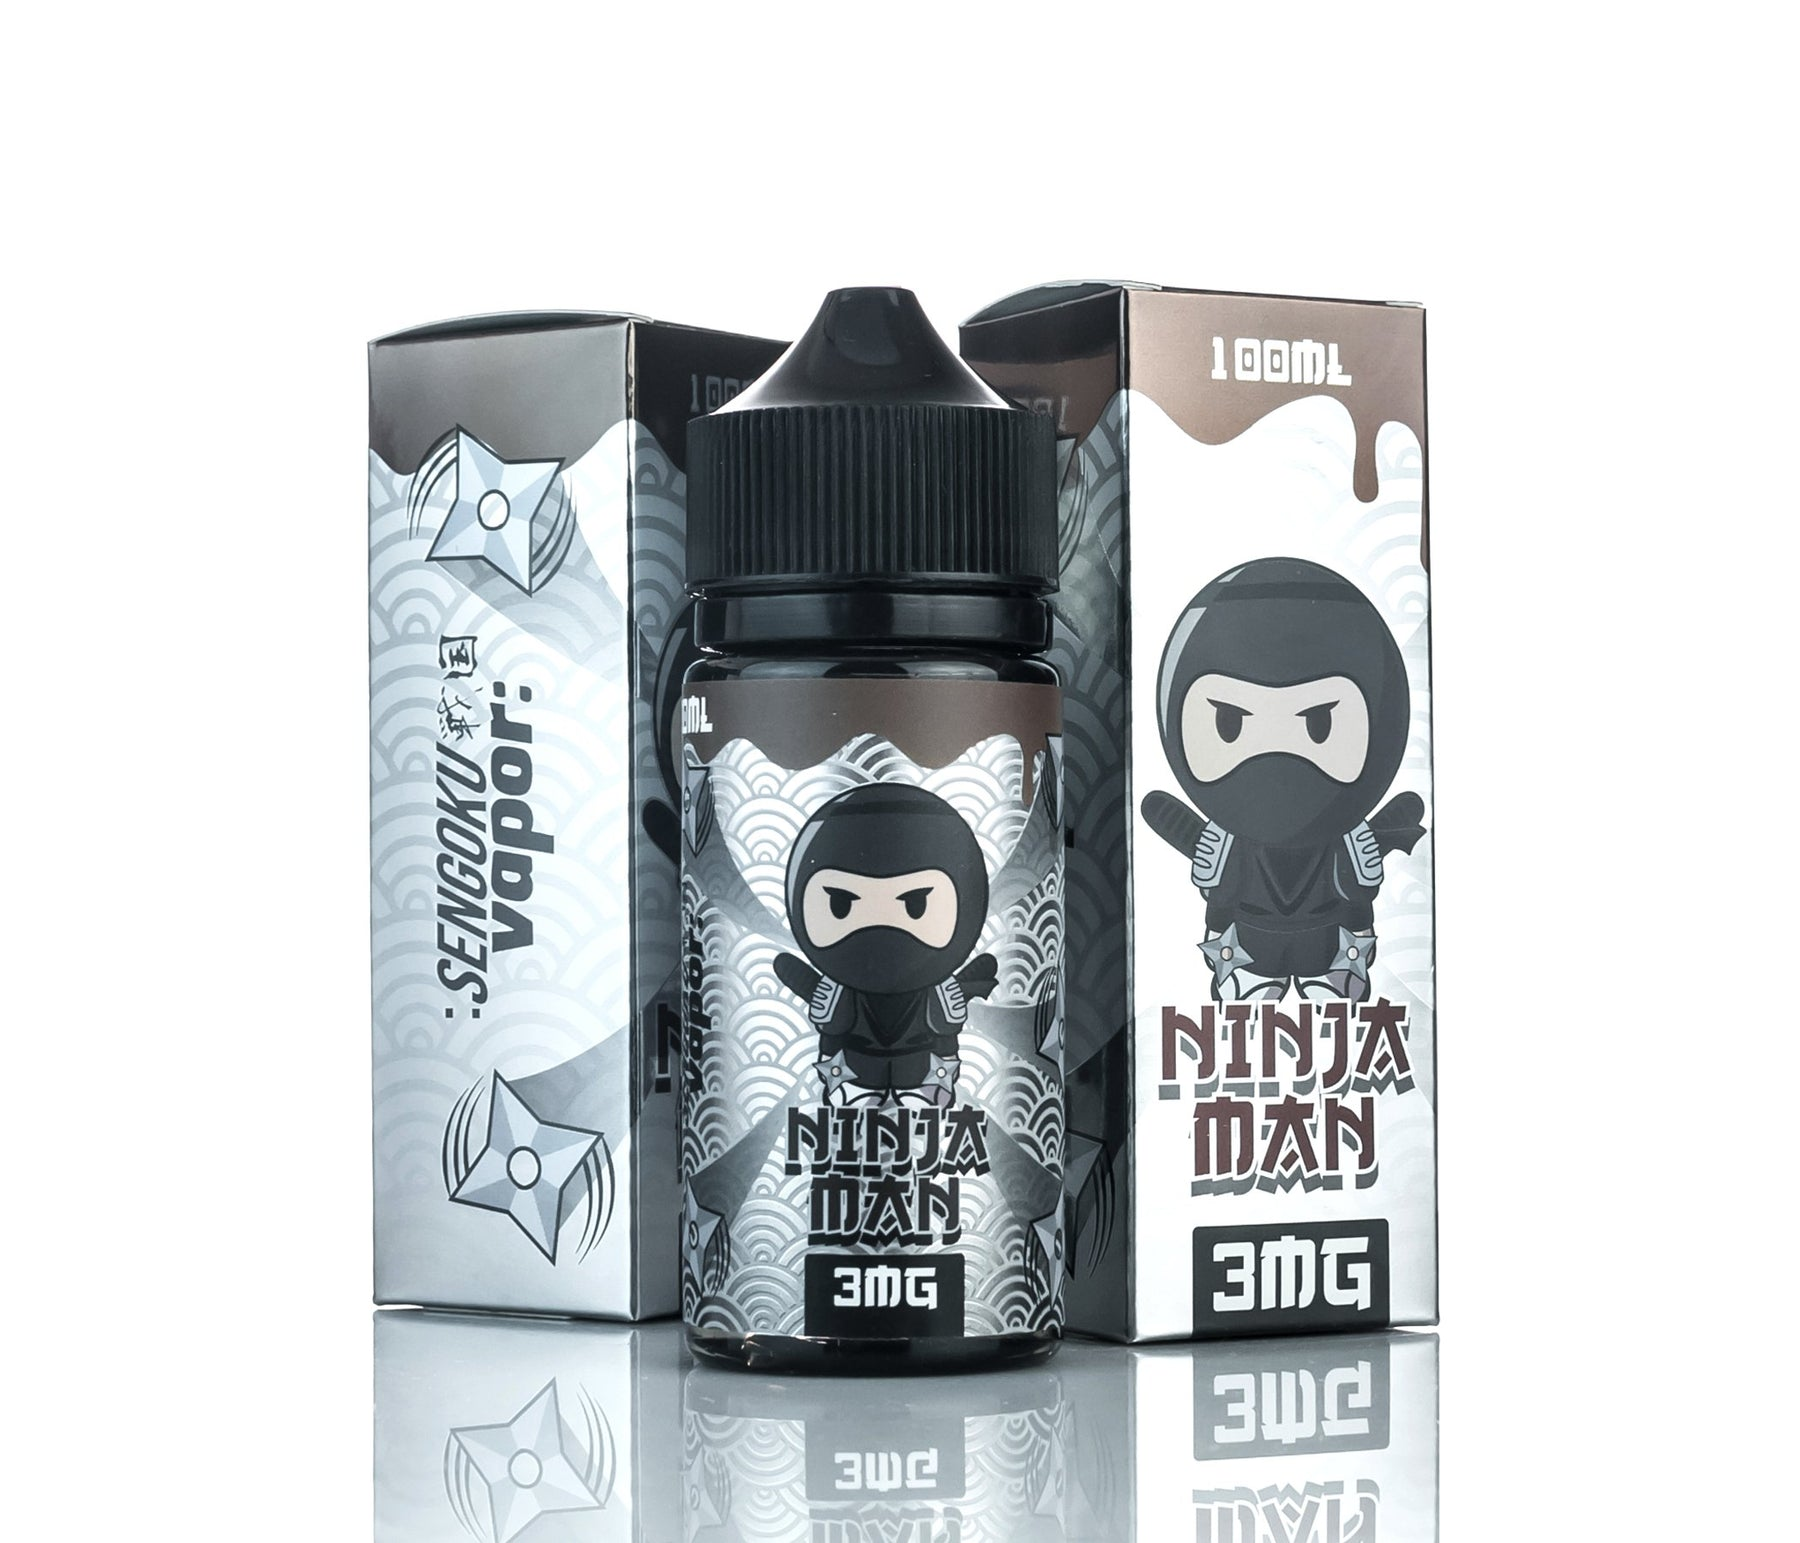 Ninja Man by Sengoku Vapor E-Liquid 100ml - 120ml.co - Best Premium eJuice and Vapor Product Store